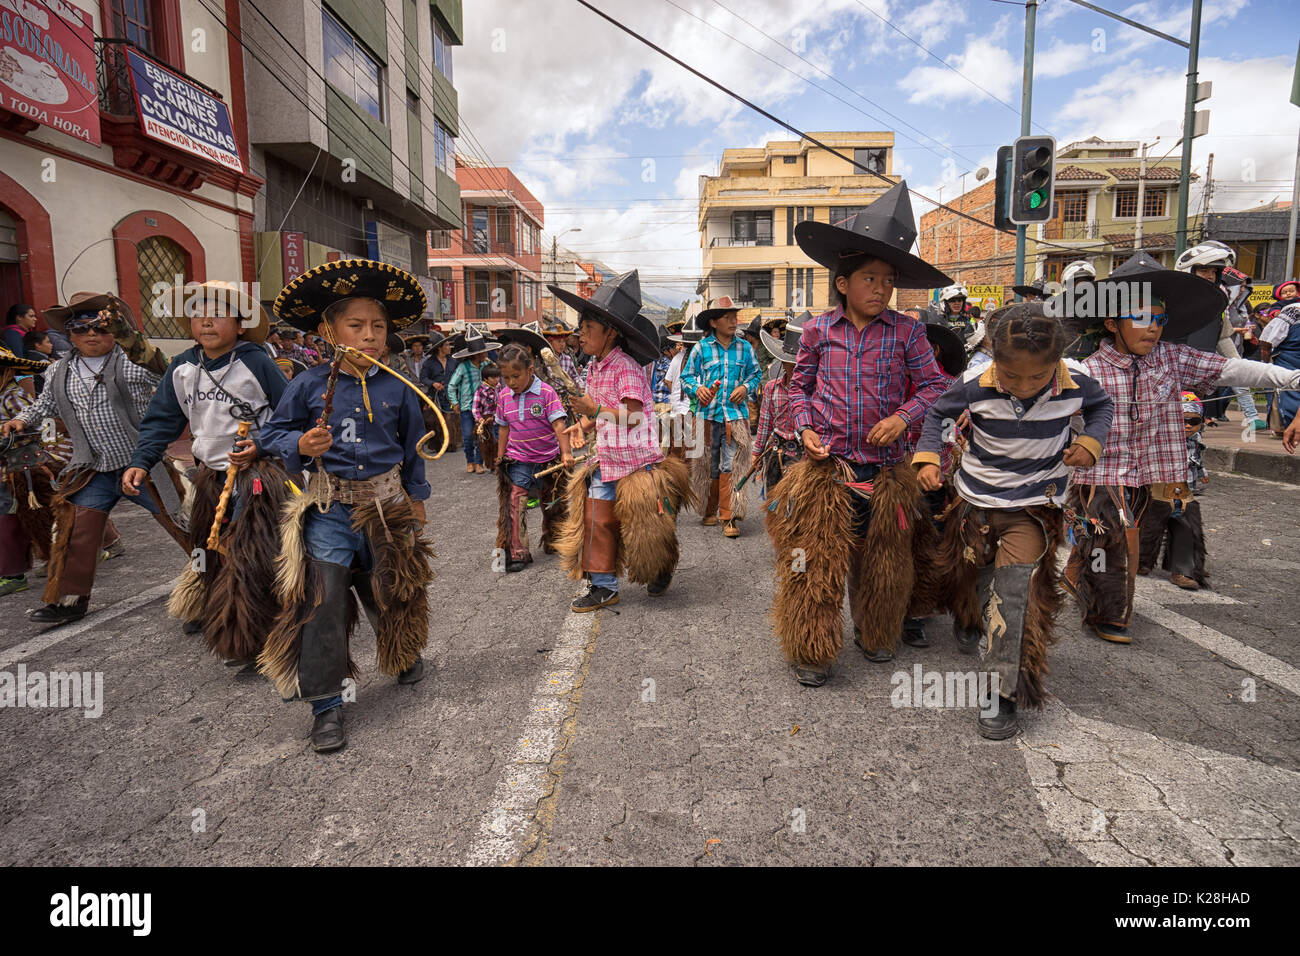 June 25, 2017 Cotacachi, Ecuador: indigenous quechua children wearing sombreros and chaps dancing at the Inti Raymi celebrations - Stock Image